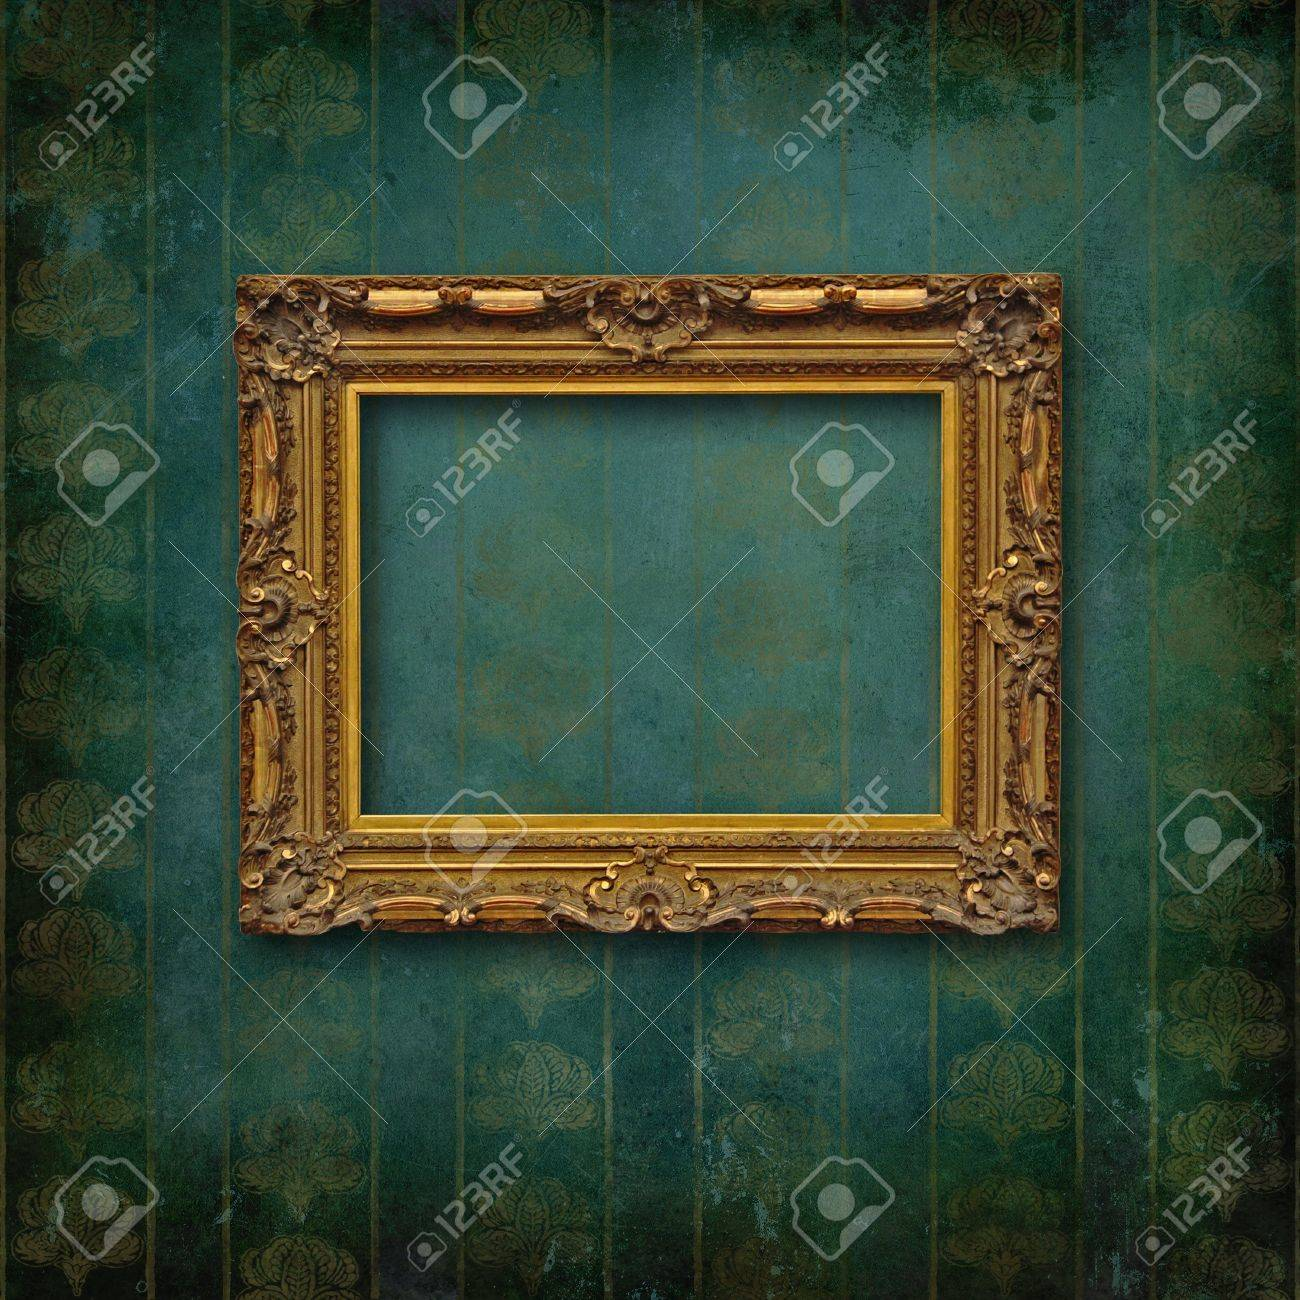 Vintage frame on faded grunge stylized texture Stock Photo - 14168879